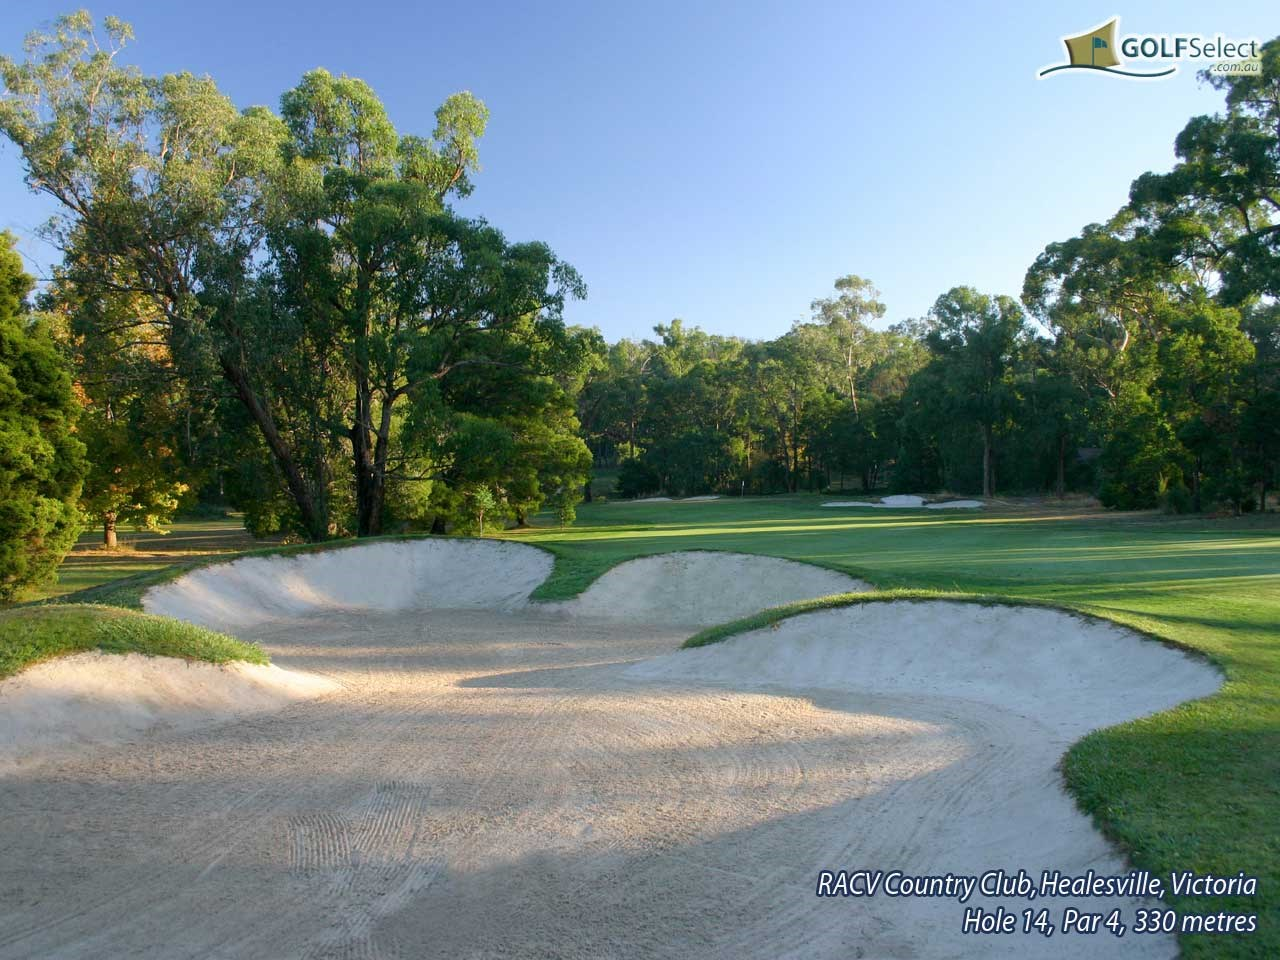 RACV Healesville Country Club Hole 14, Par 4, 330 metres